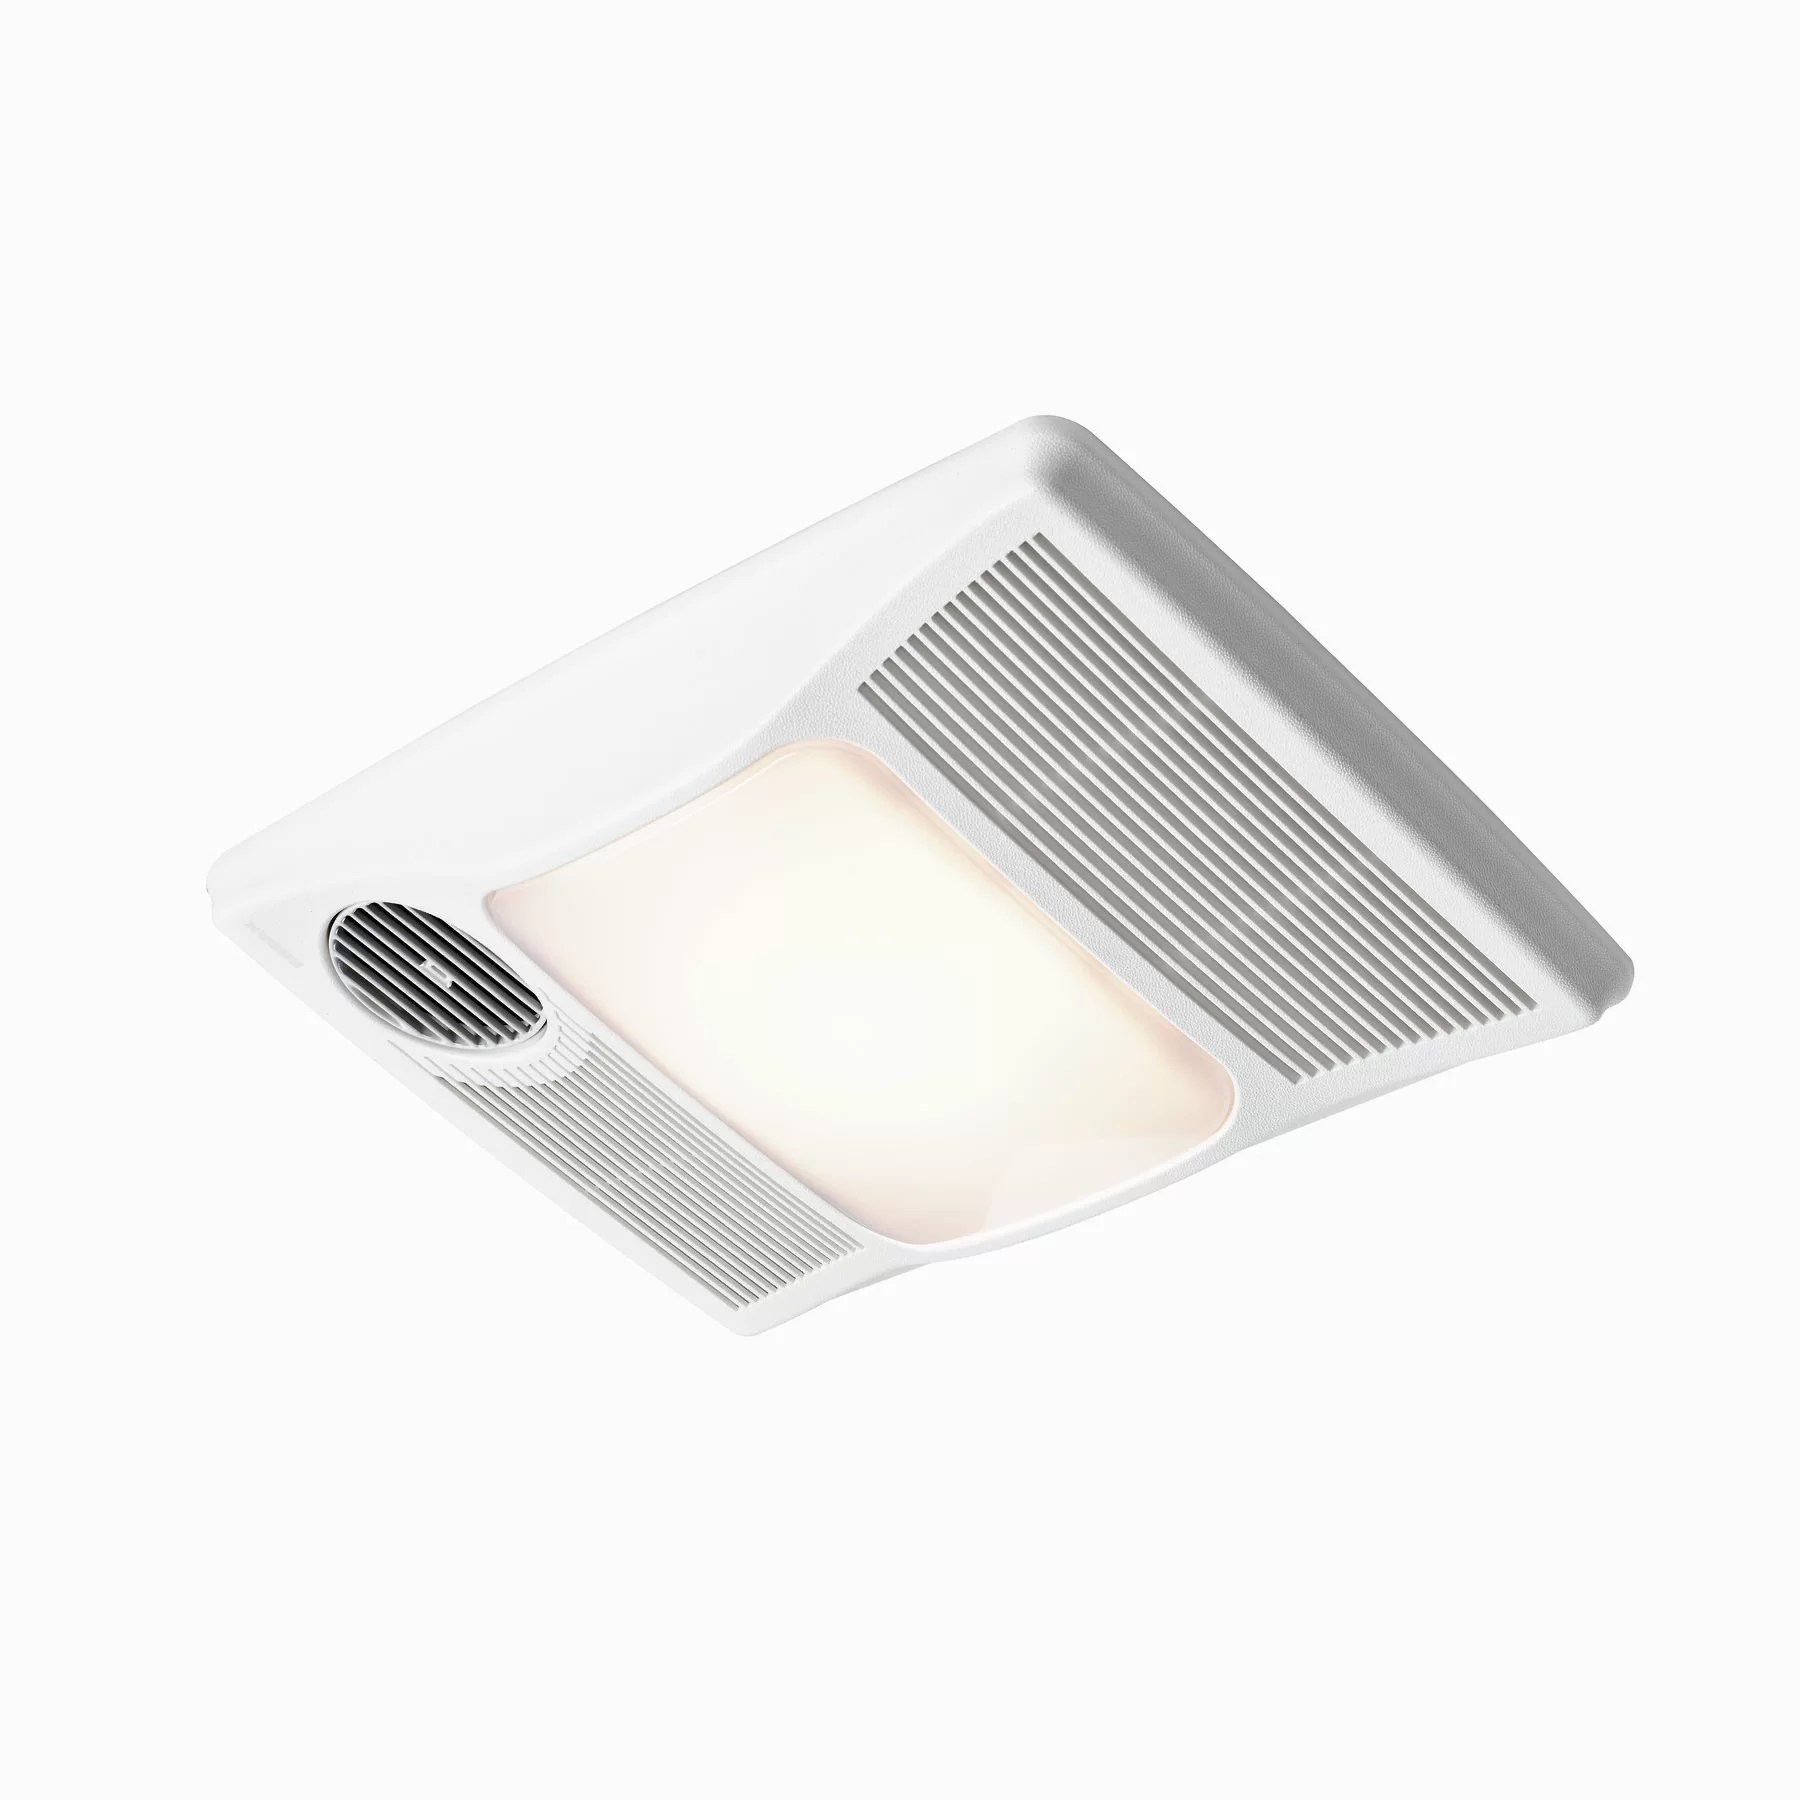 Broan 100 CFM Bathroom Fan with Heater and Light  Reviews